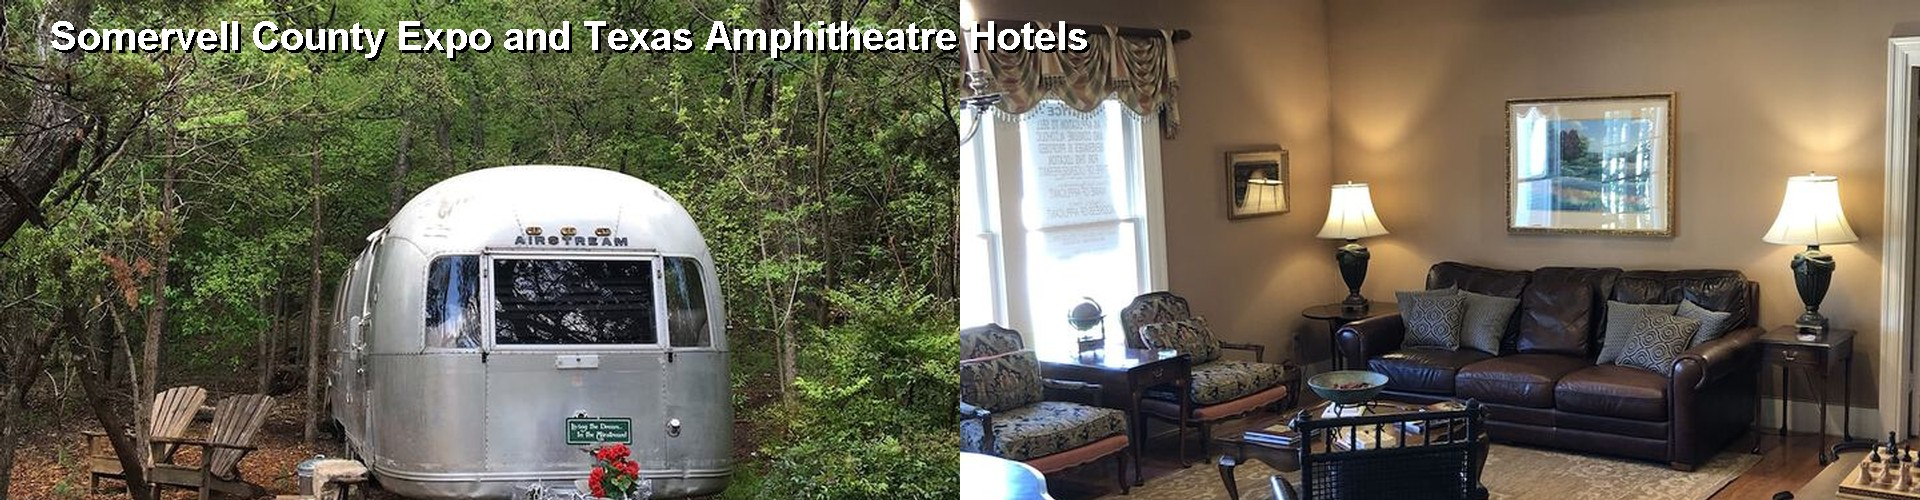 5 Best Hotels near Somervell County Expo and Texas Amphitheatre